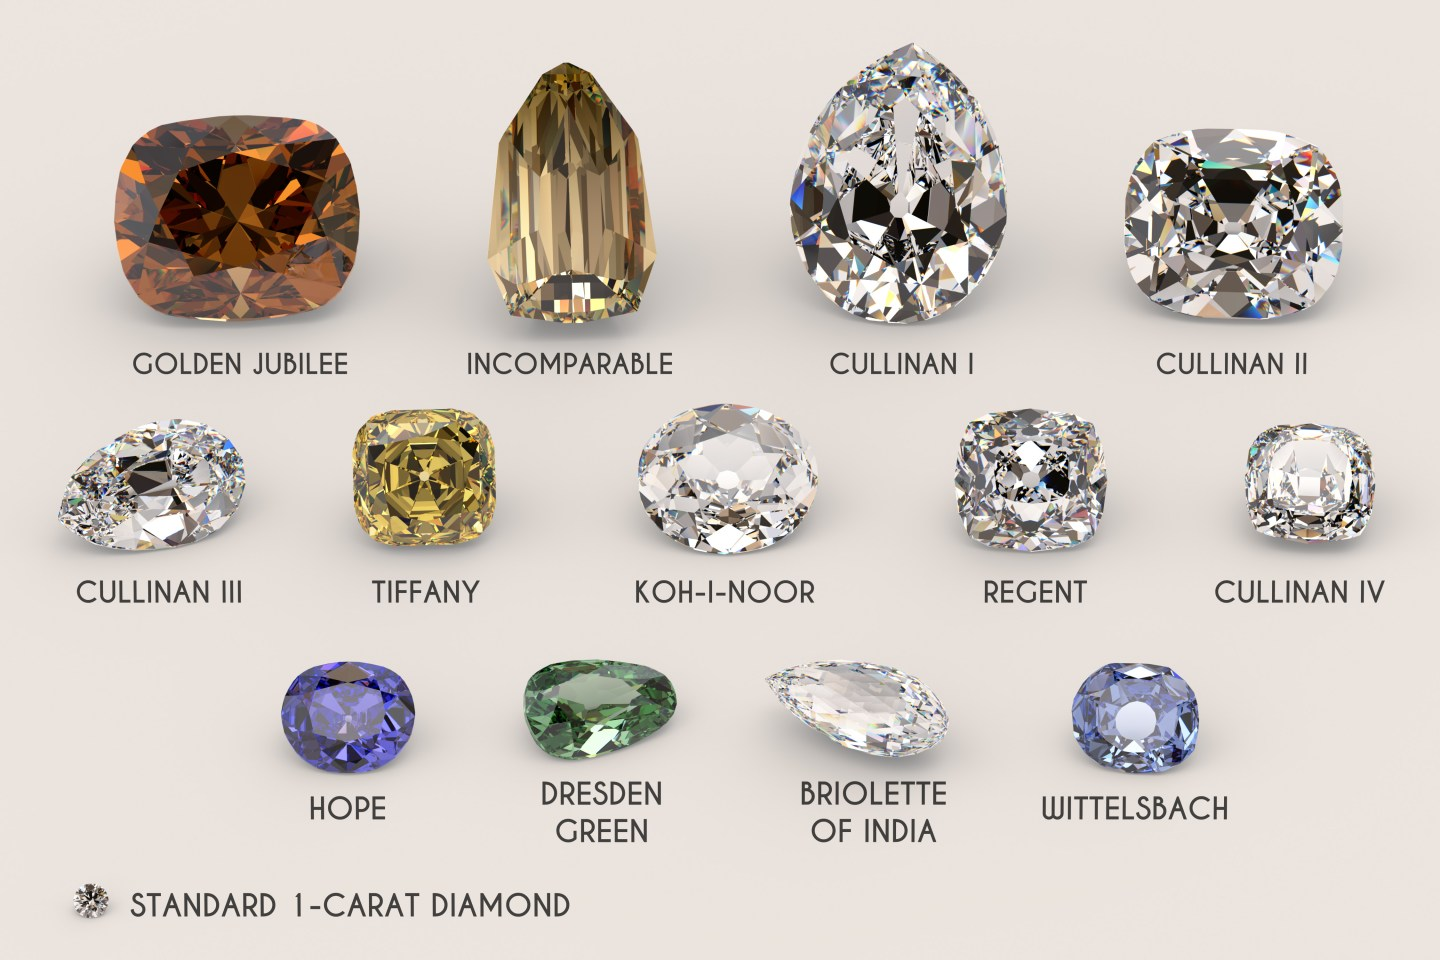 The biggest and the most famous diamonds in the world